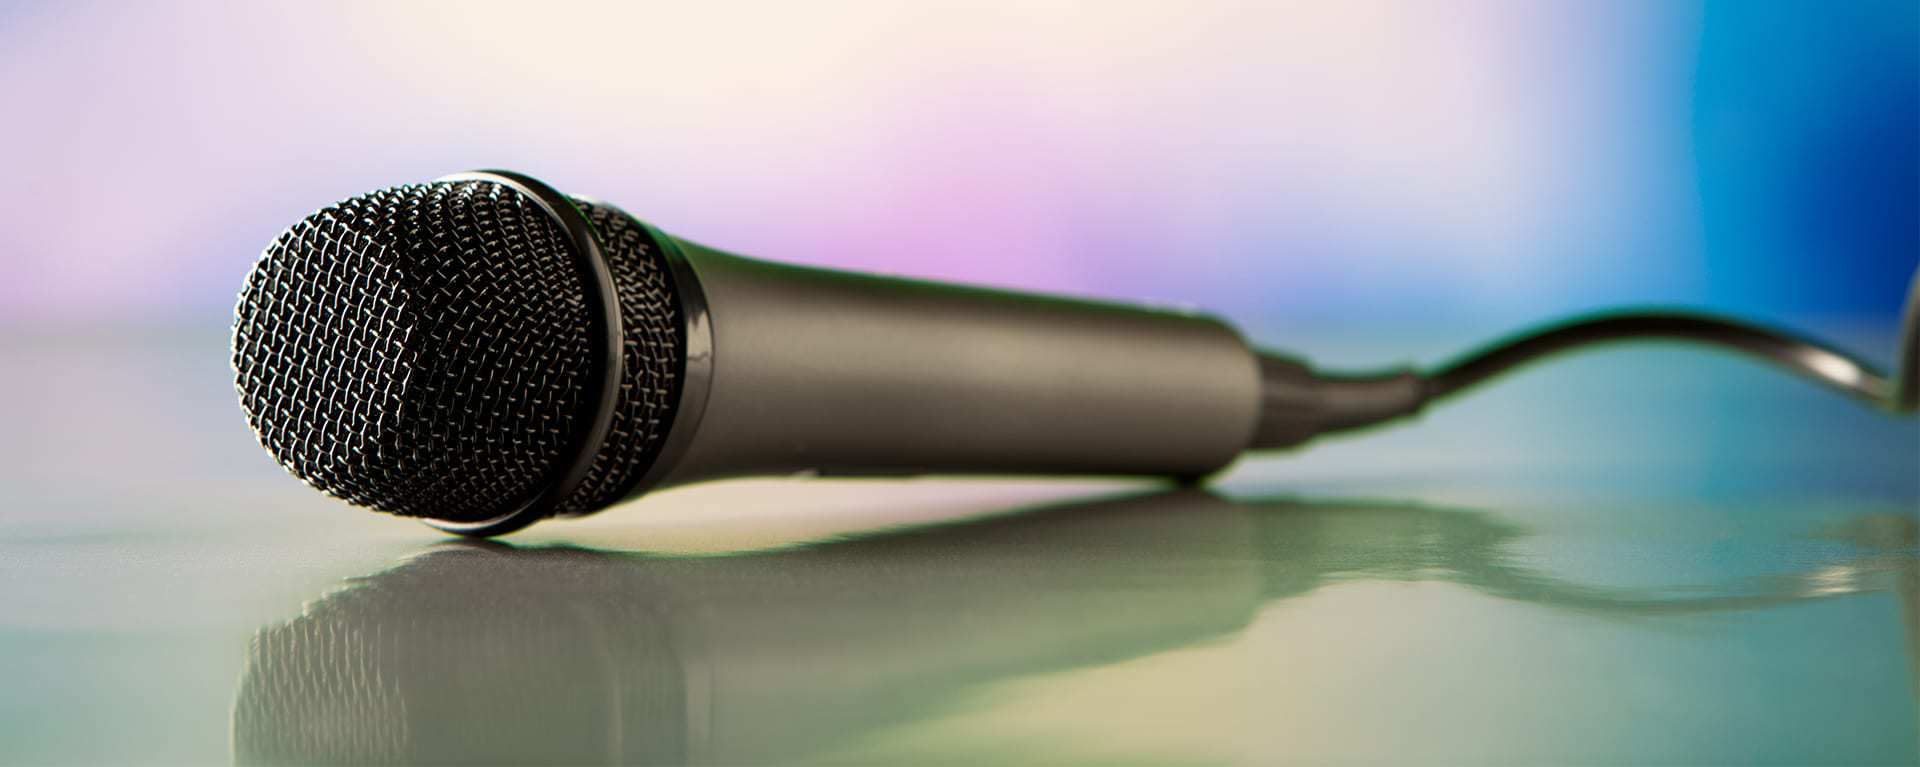 Microphone image representing Swartz Consulting speaking engagements